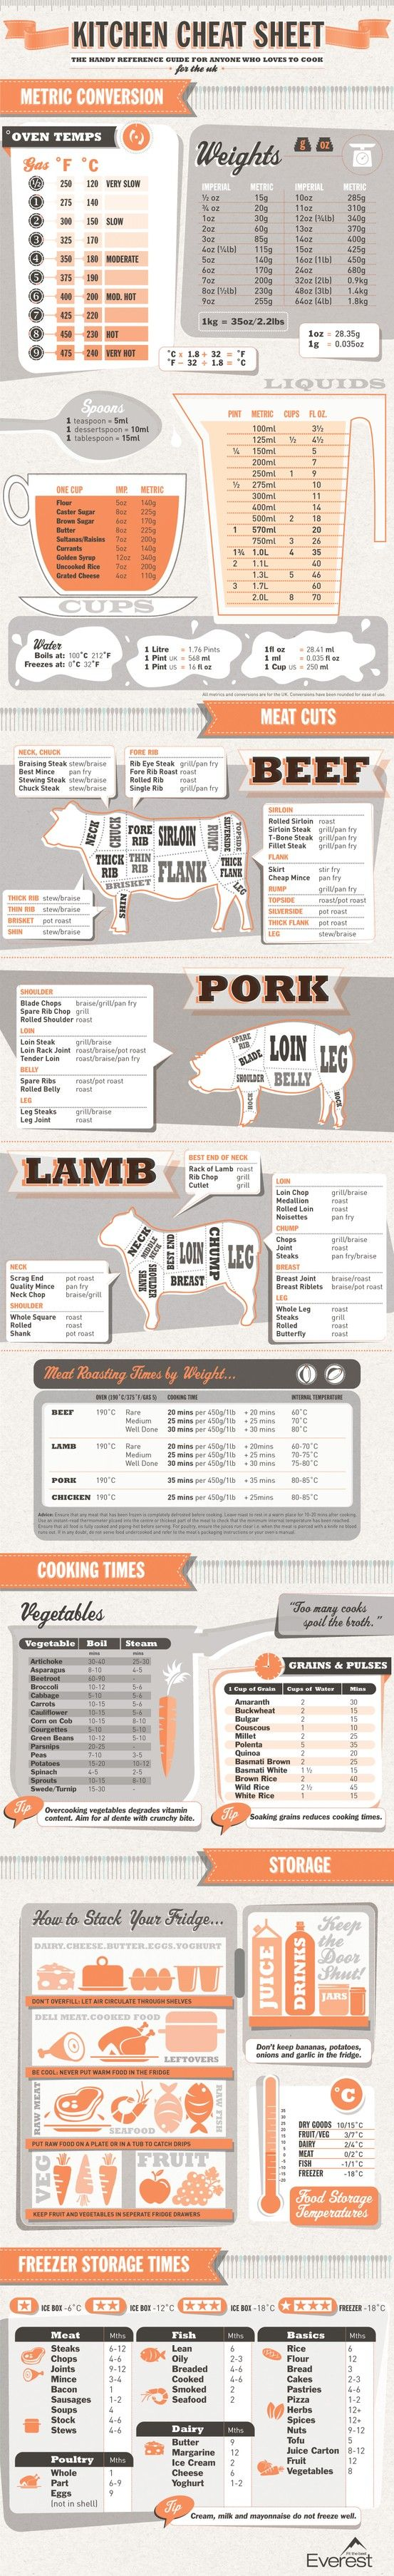 The ultimate kitchen cheat sheet